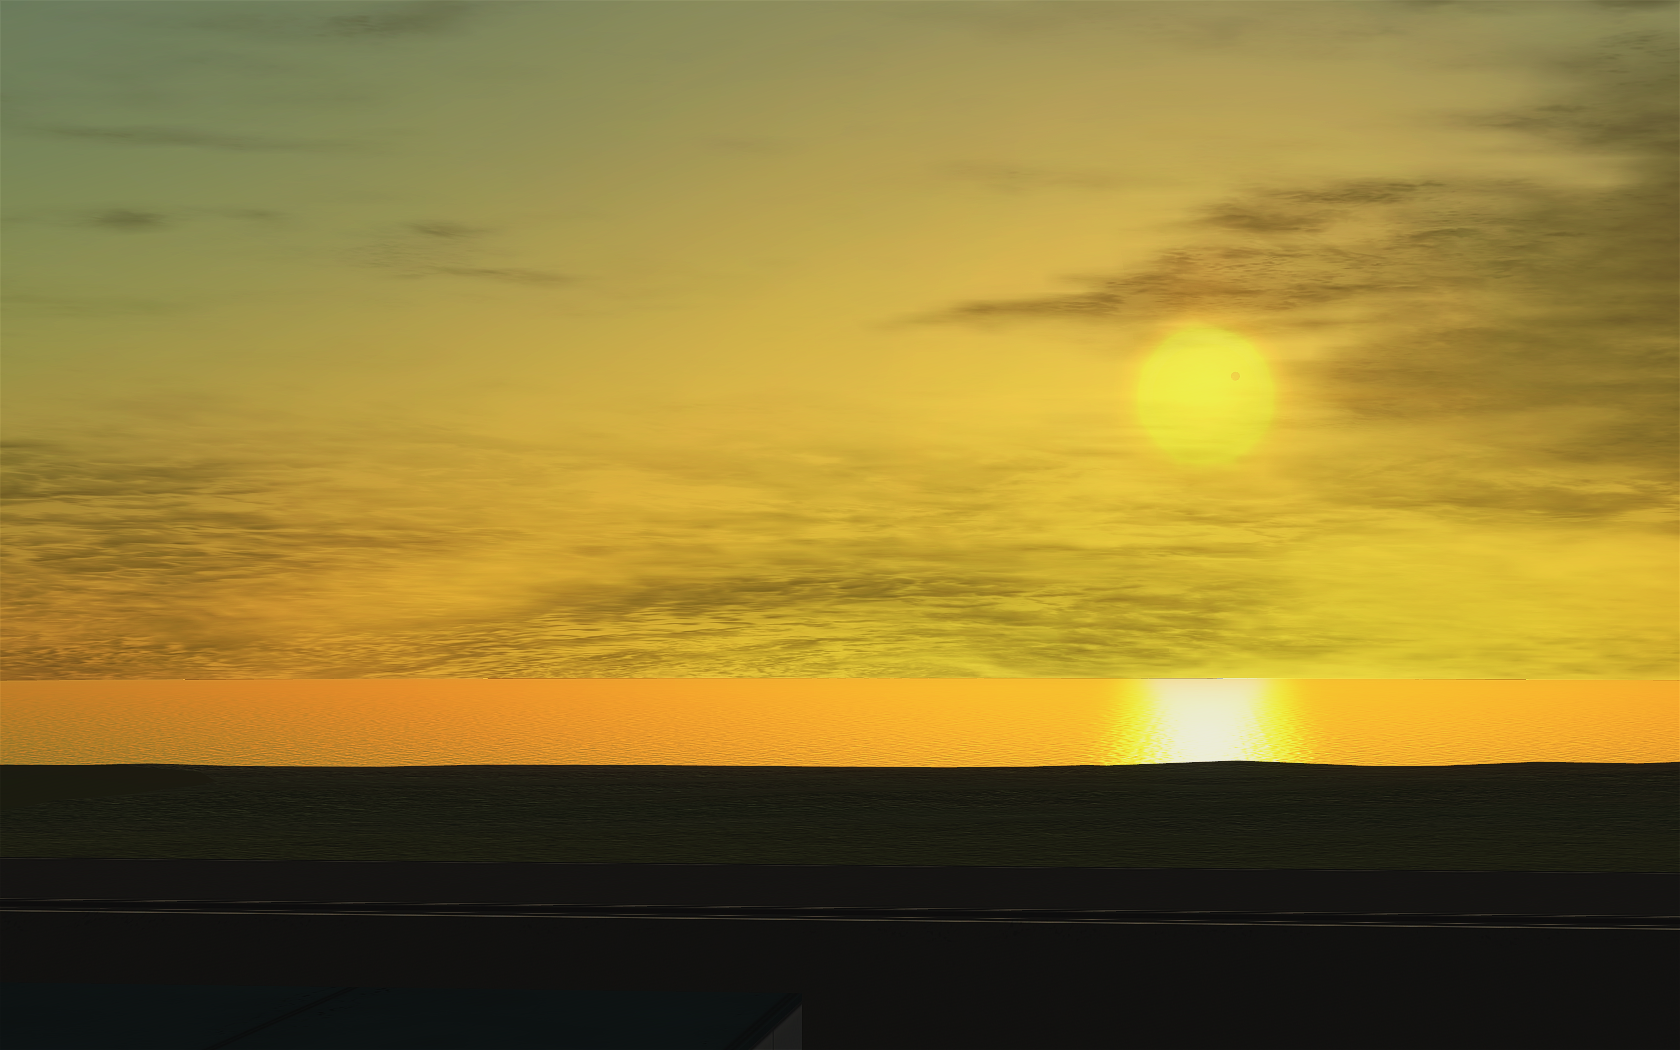 Don't clean your screen. That dot on the sun is Minmus!